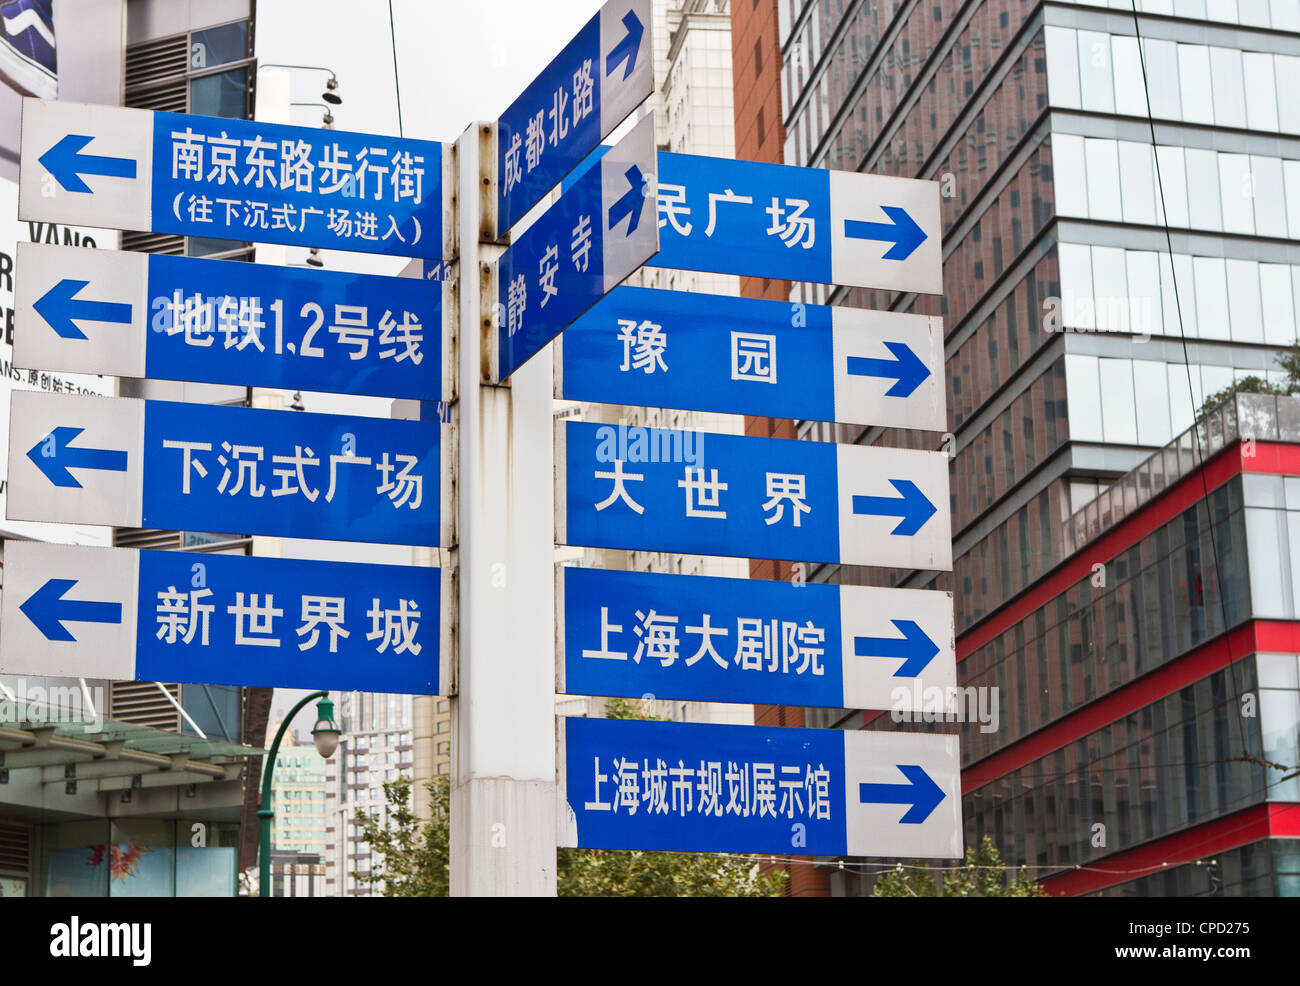 Street signs, Nanjing Road, Shanghai, China, Asia - Stock Image